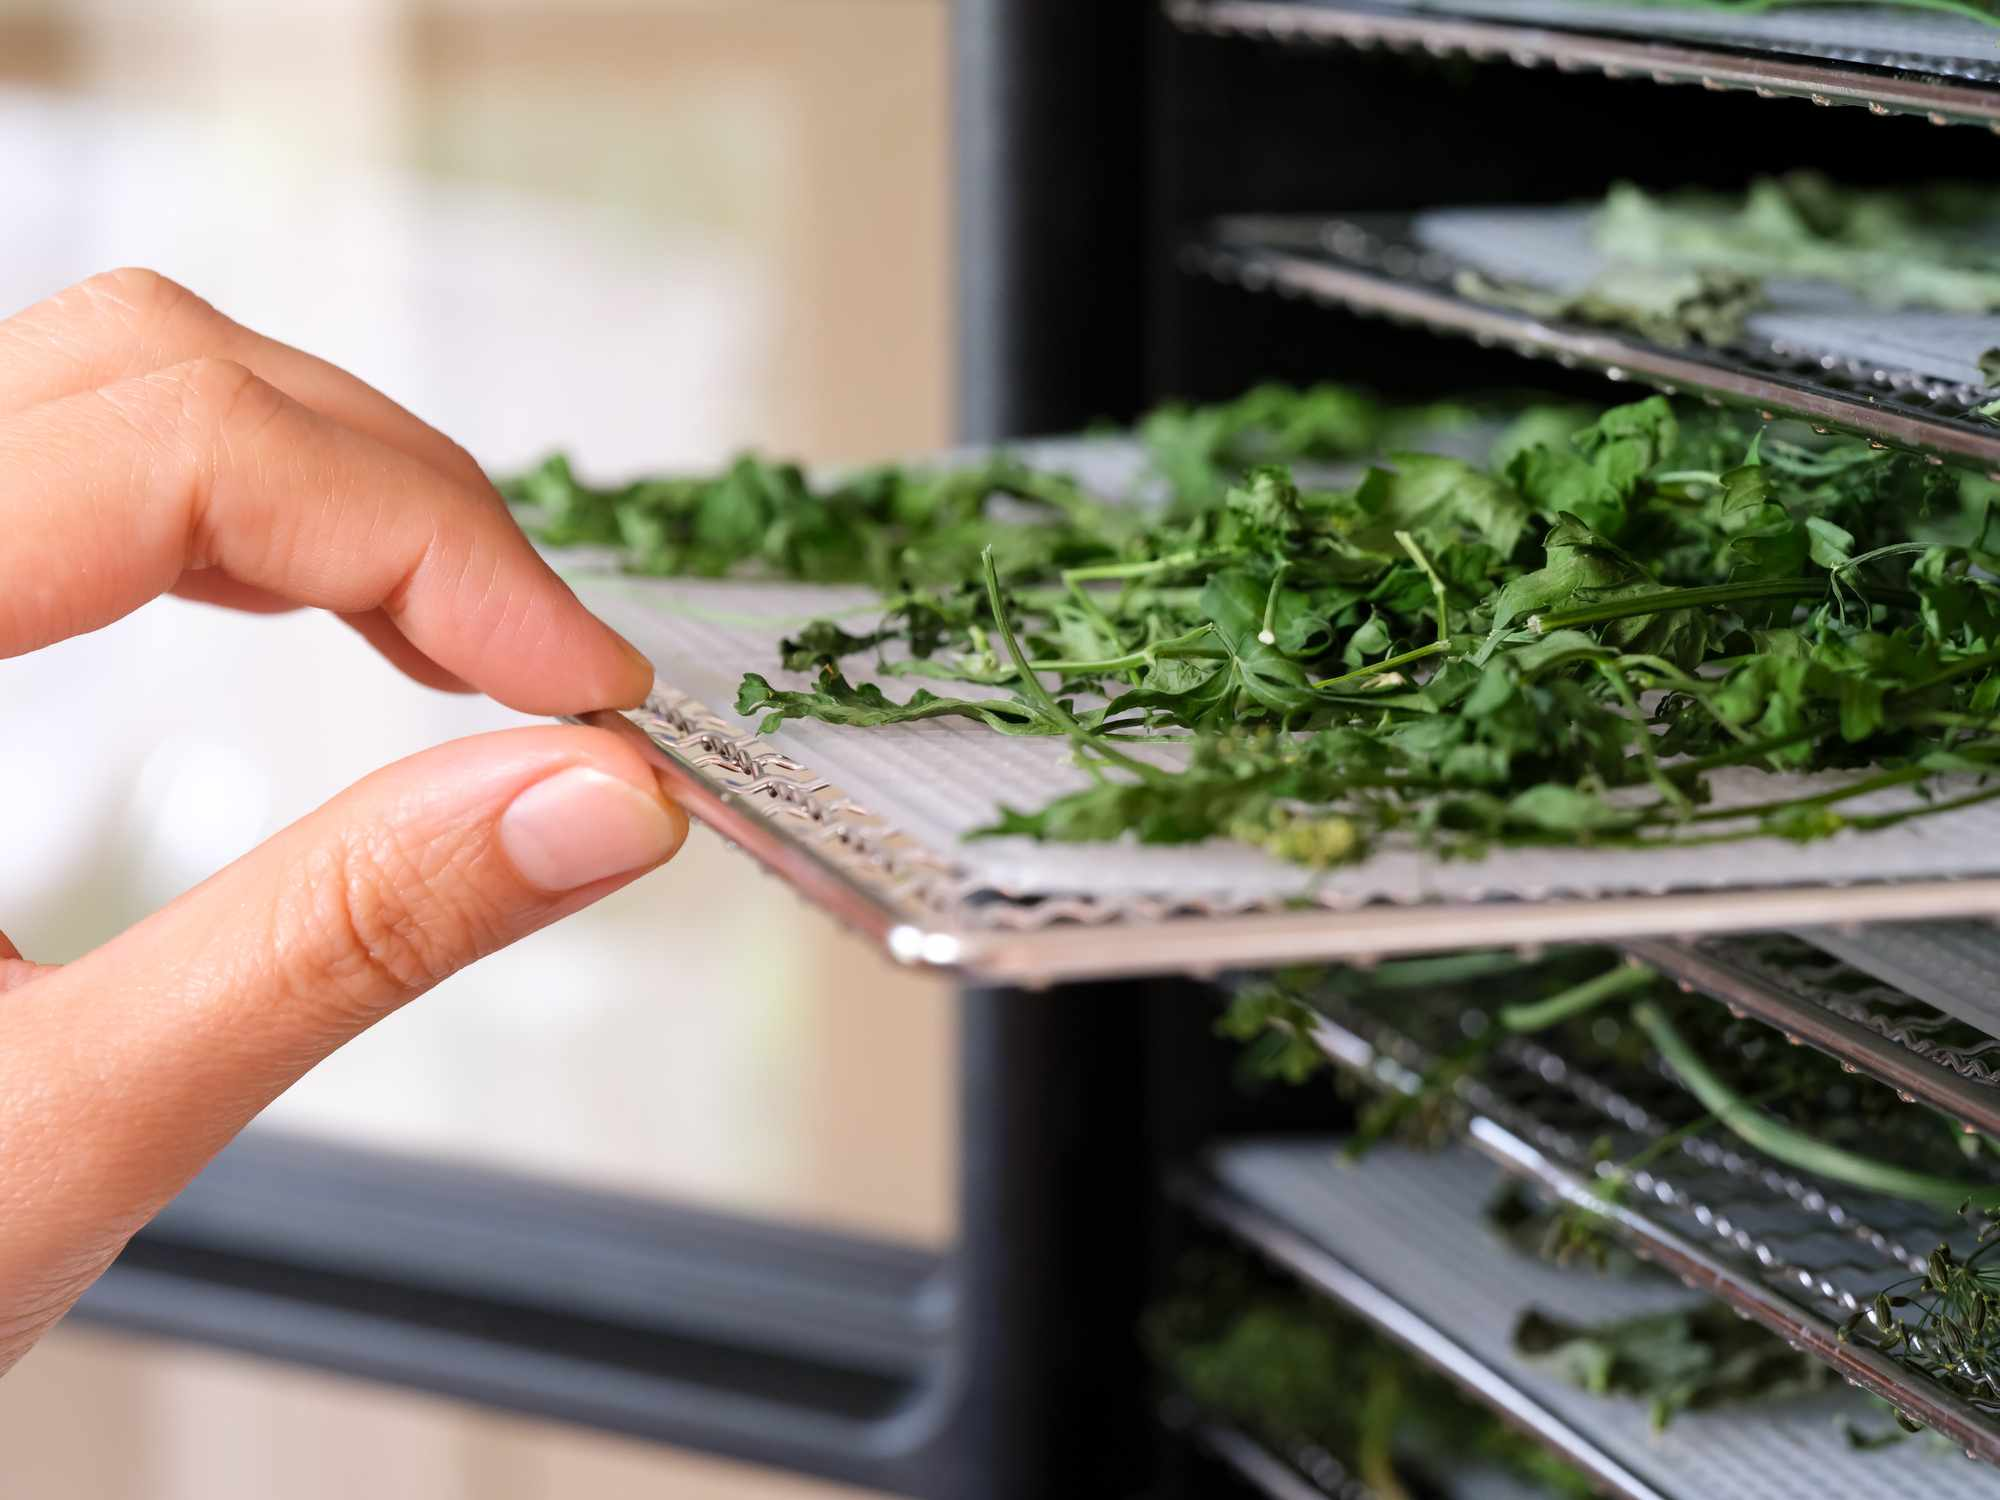 A woman removing a tray of parsley from a food dehydrating machine